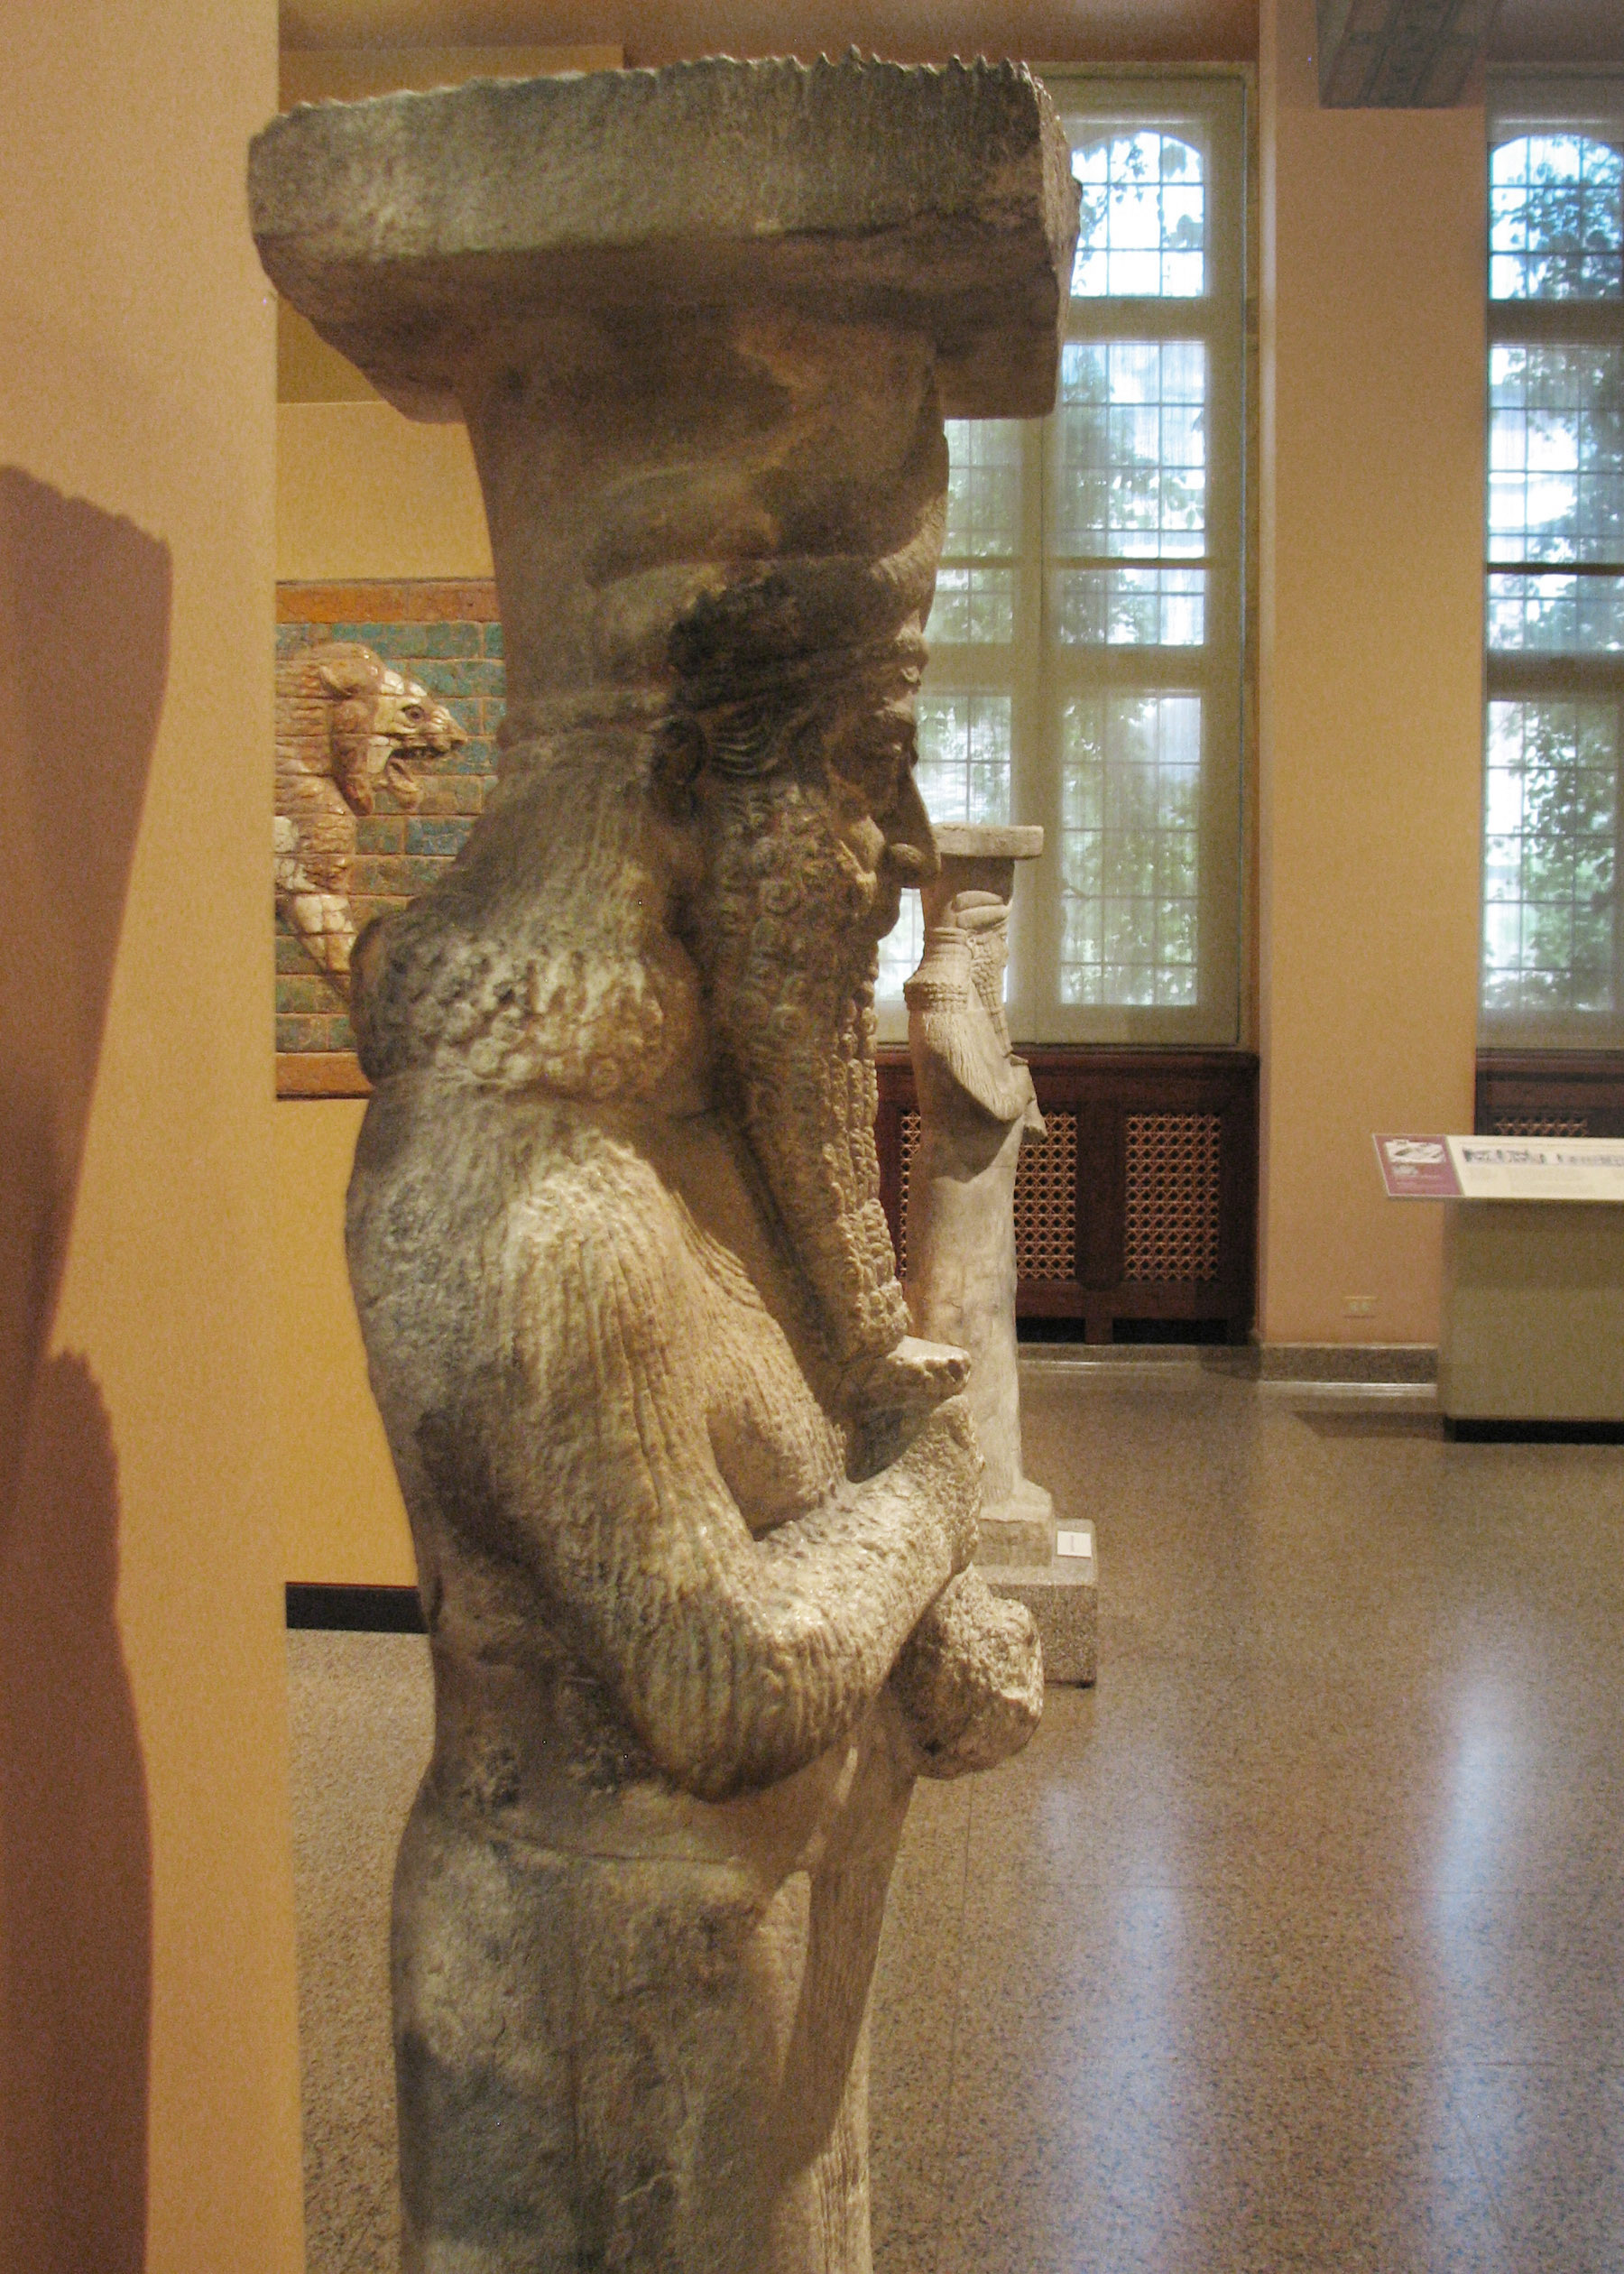 2gg - life-sized statue of the giant alien god Nabu, standimg in the museum in Iraq, but now destroyed by Radical Islam, fearing common men & women might begin to understand the ancient evidence, artefacts that directly conflicts with, & widely contradicts primitive 7th century teachings of Islam, their power-brokers fear massive loss of credibility, & loss of control over awakened followers